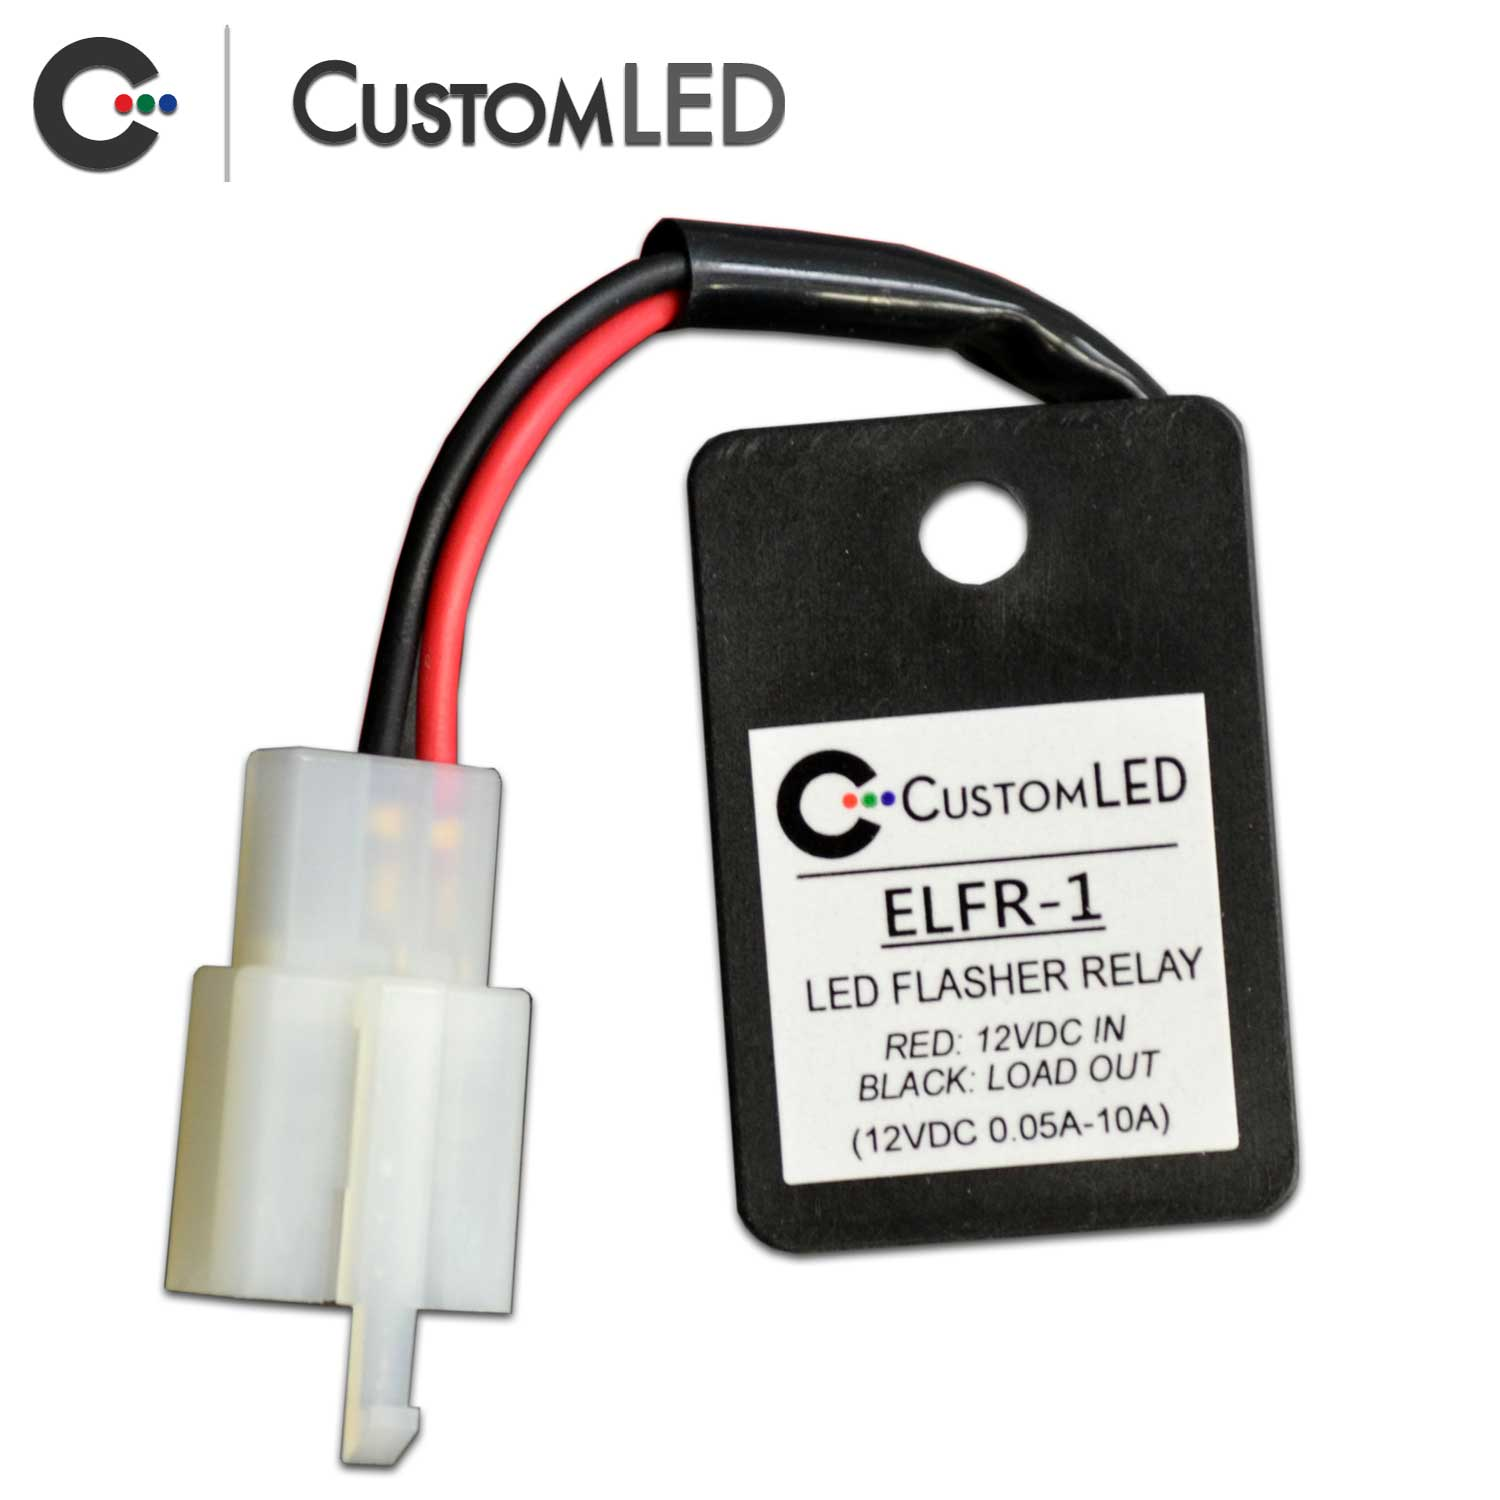 Elfr 1 Electronic Led Flasher Relay With Oem Connector Custom Wiring